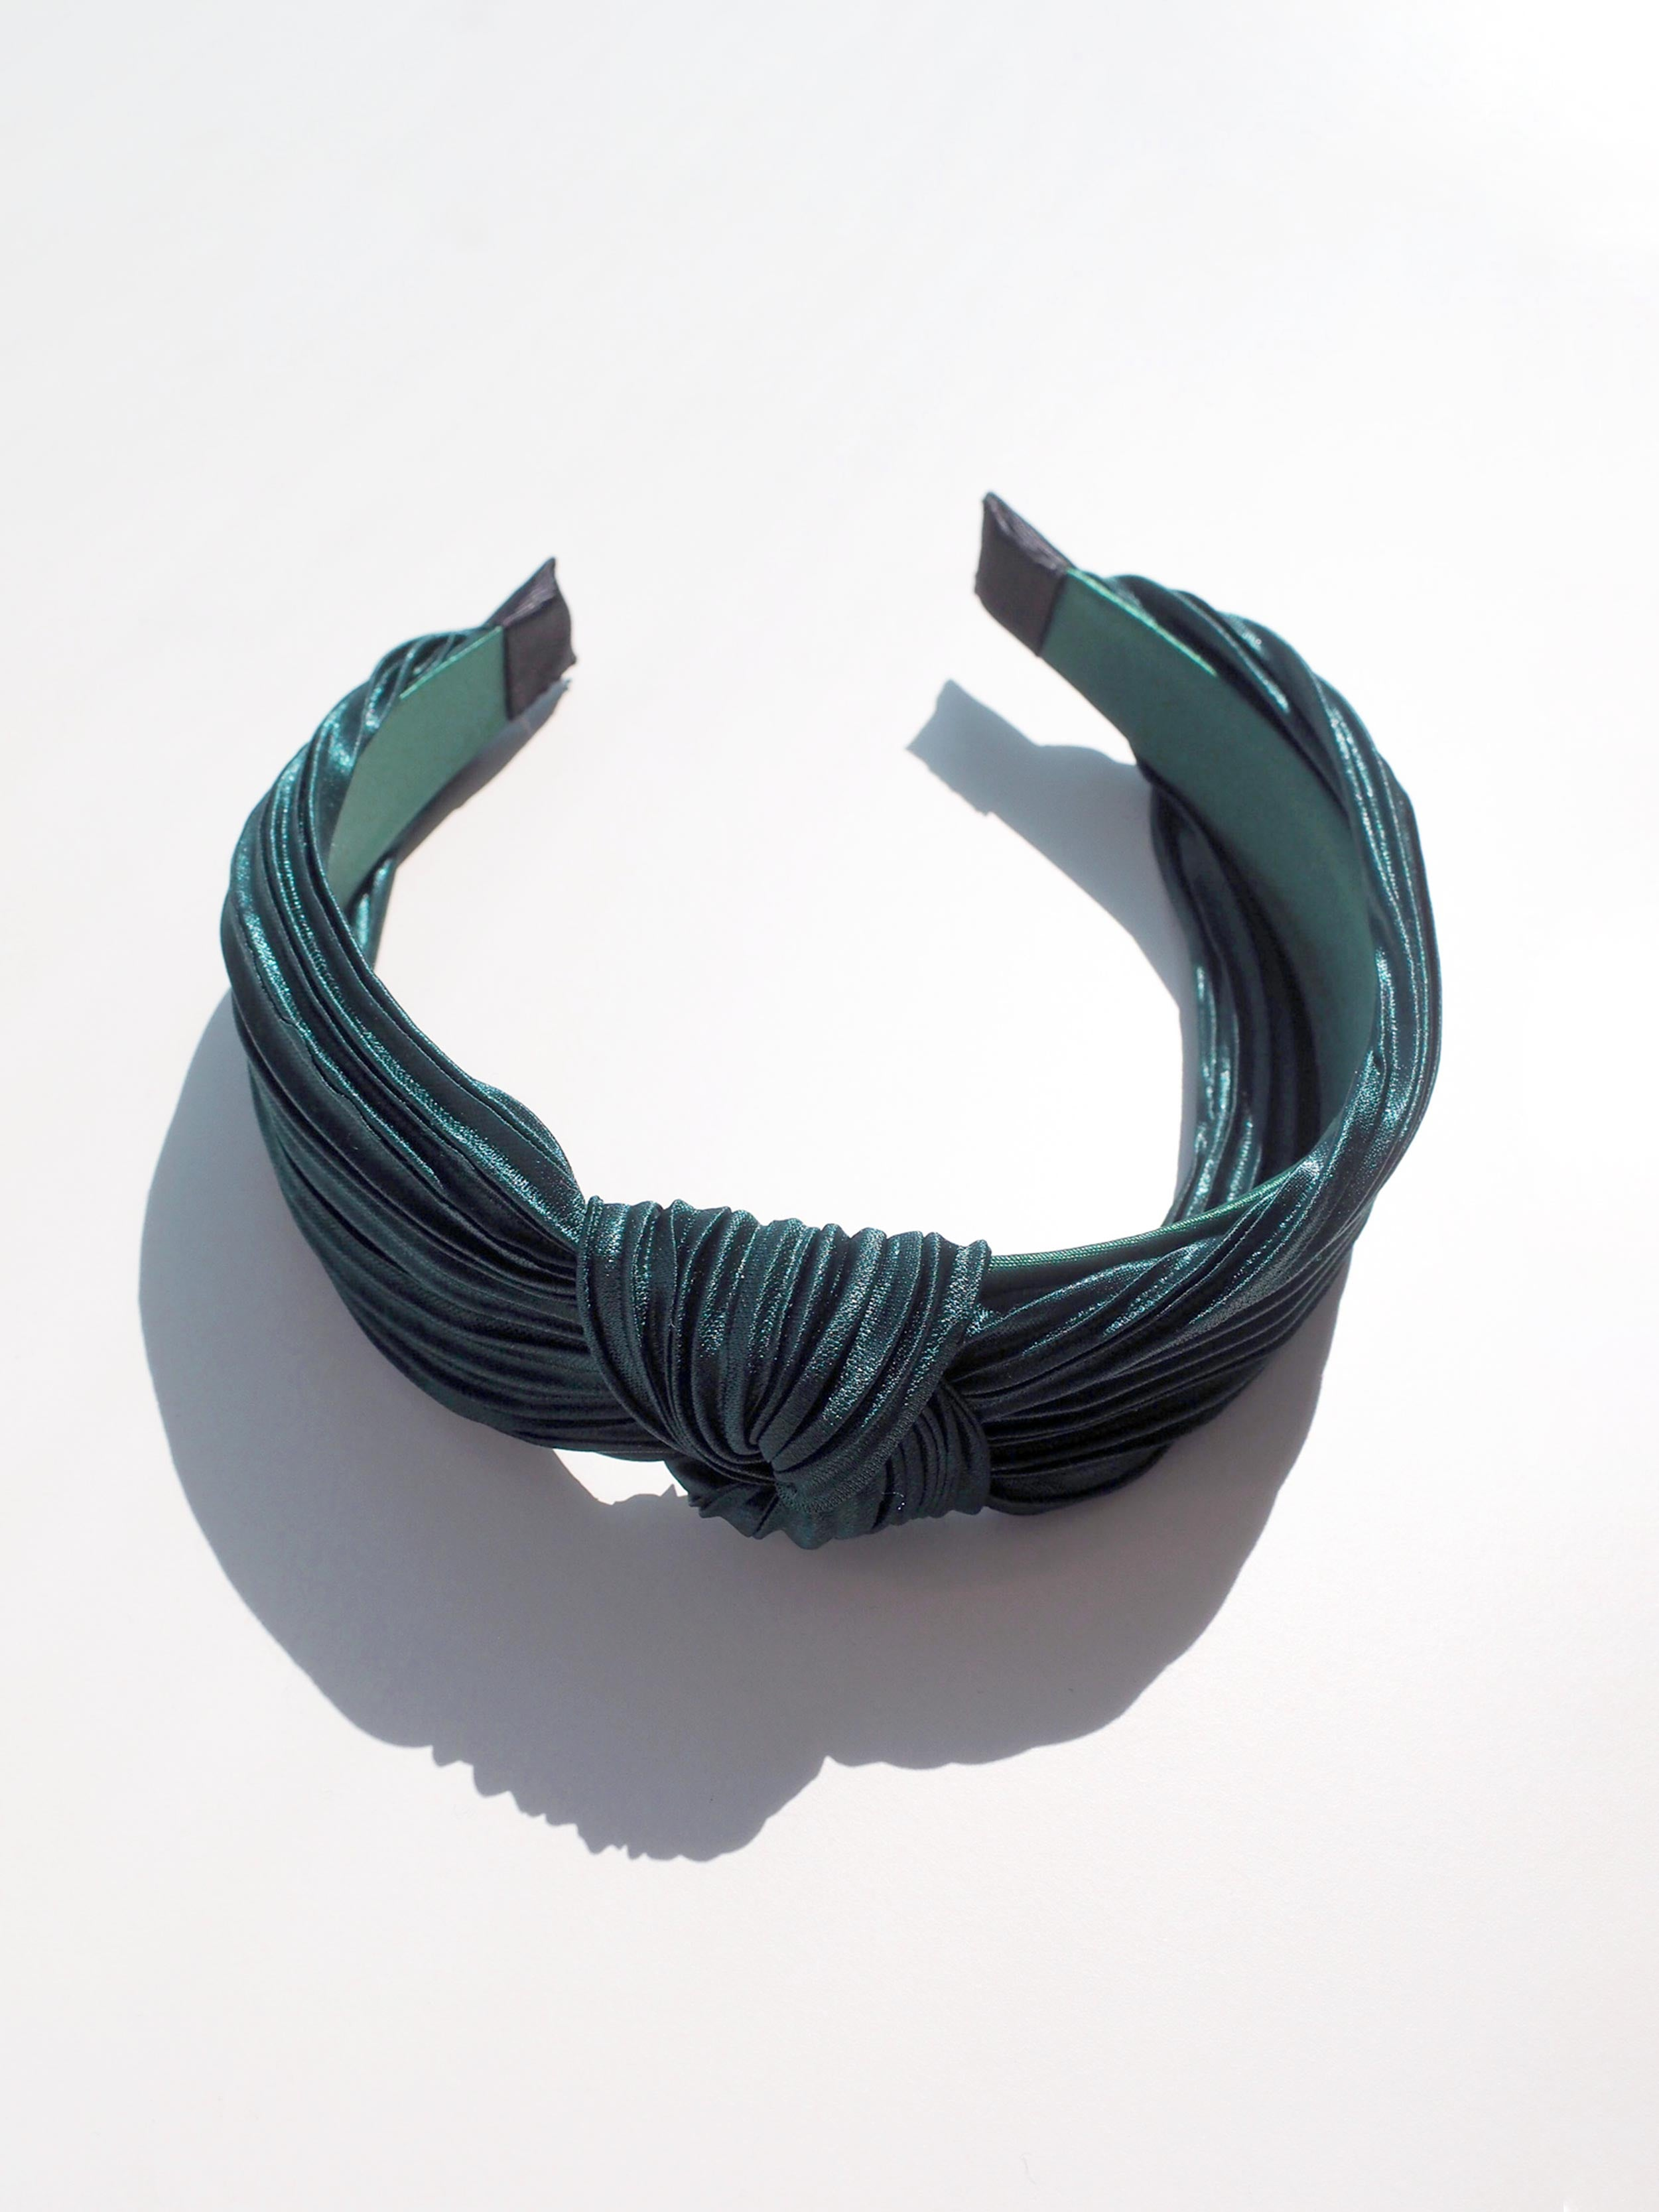 HELLO DARLING HEADBAND IN DEEP GREEN